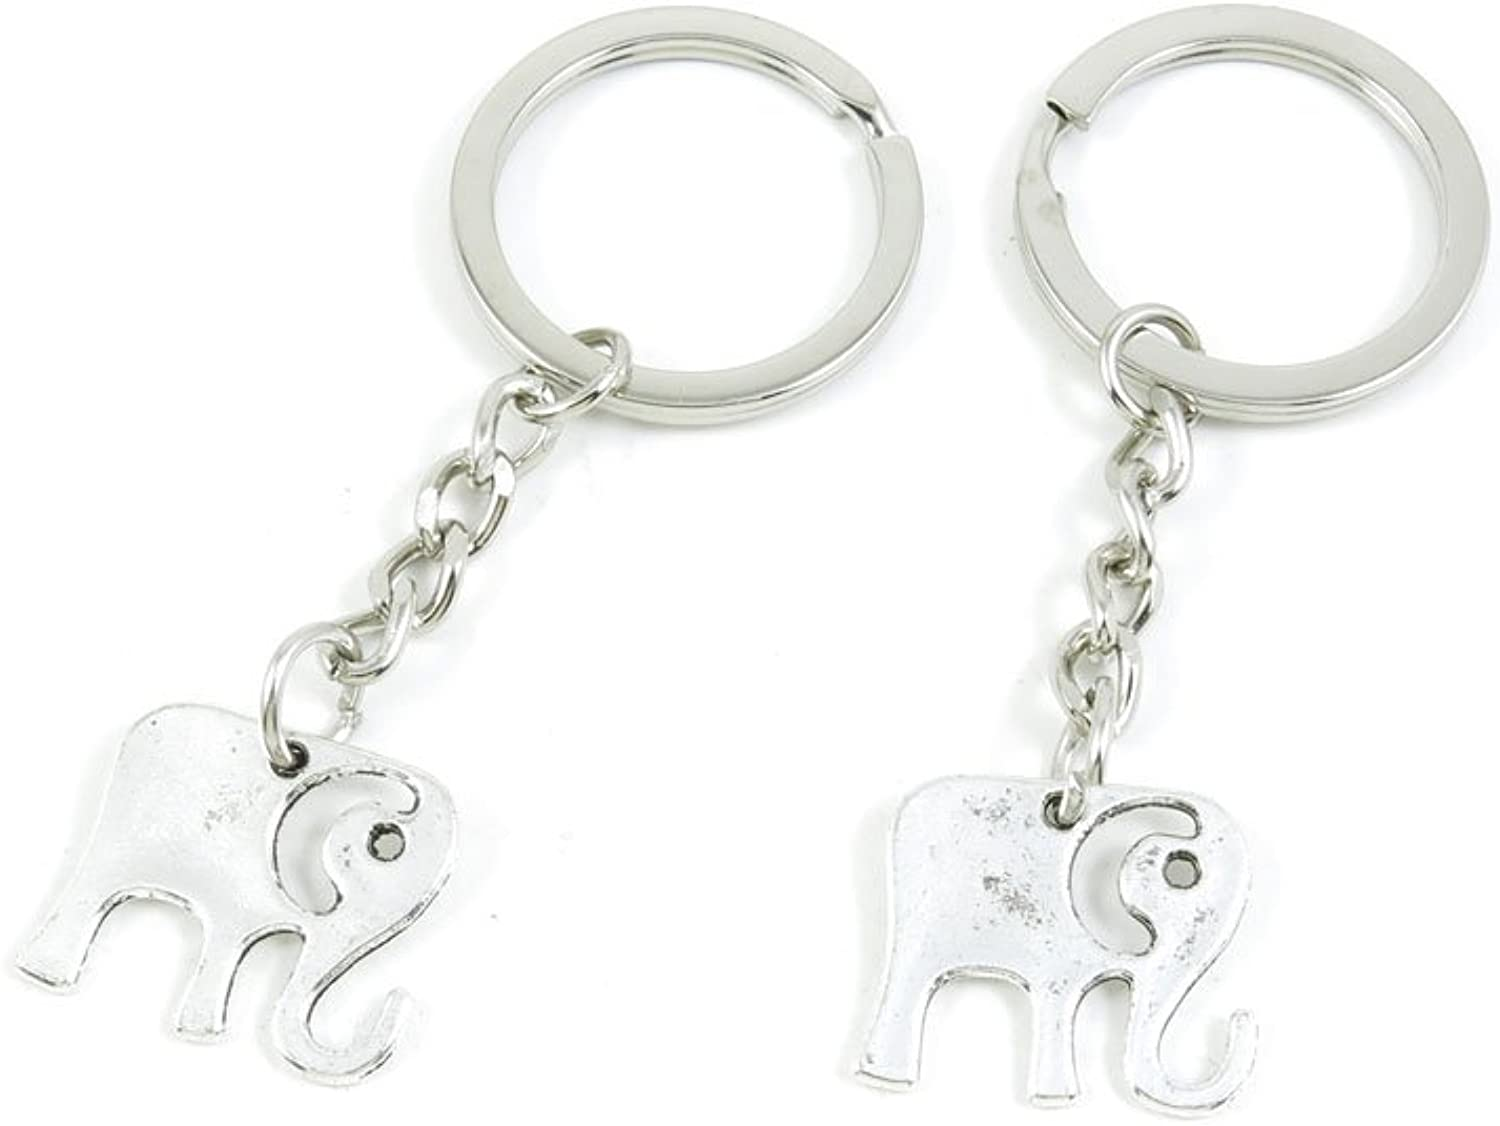 190 Pieces Fashion Jewelry Keyring Keychain Door Car Key Tag Ring Chain Supplier Supply Wholesale Bulk Lots J7TK6 Cute Elephant